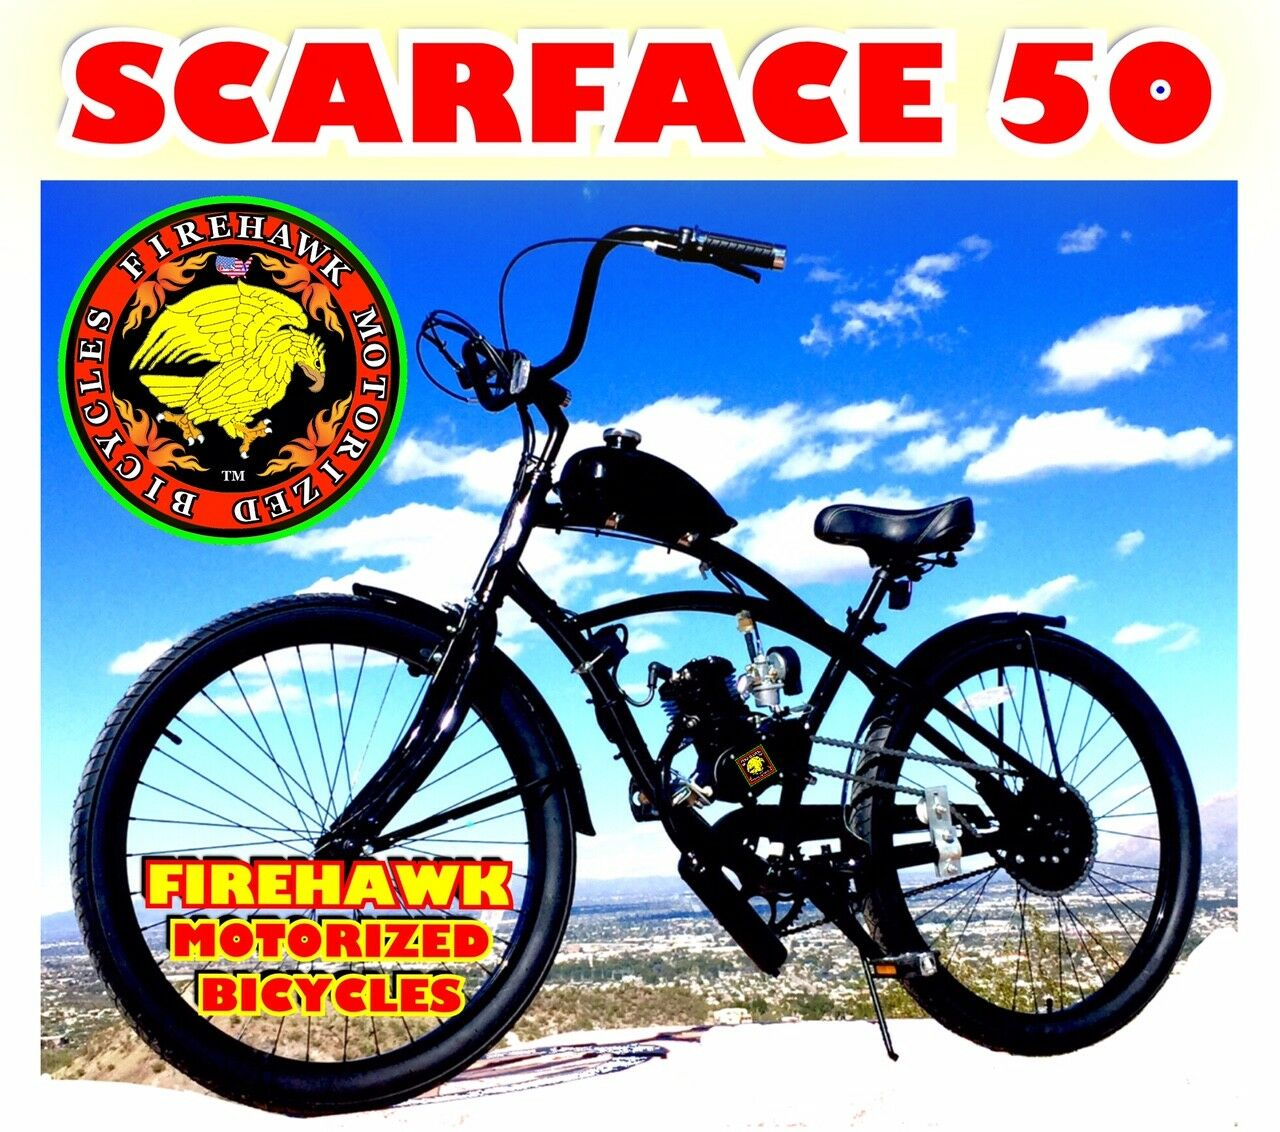 SCARFACE 50 80CC GAS MOTOR MOTORIZED ENGINE & 26  BIKE BICYCLE MOPED SCOOTER KIT